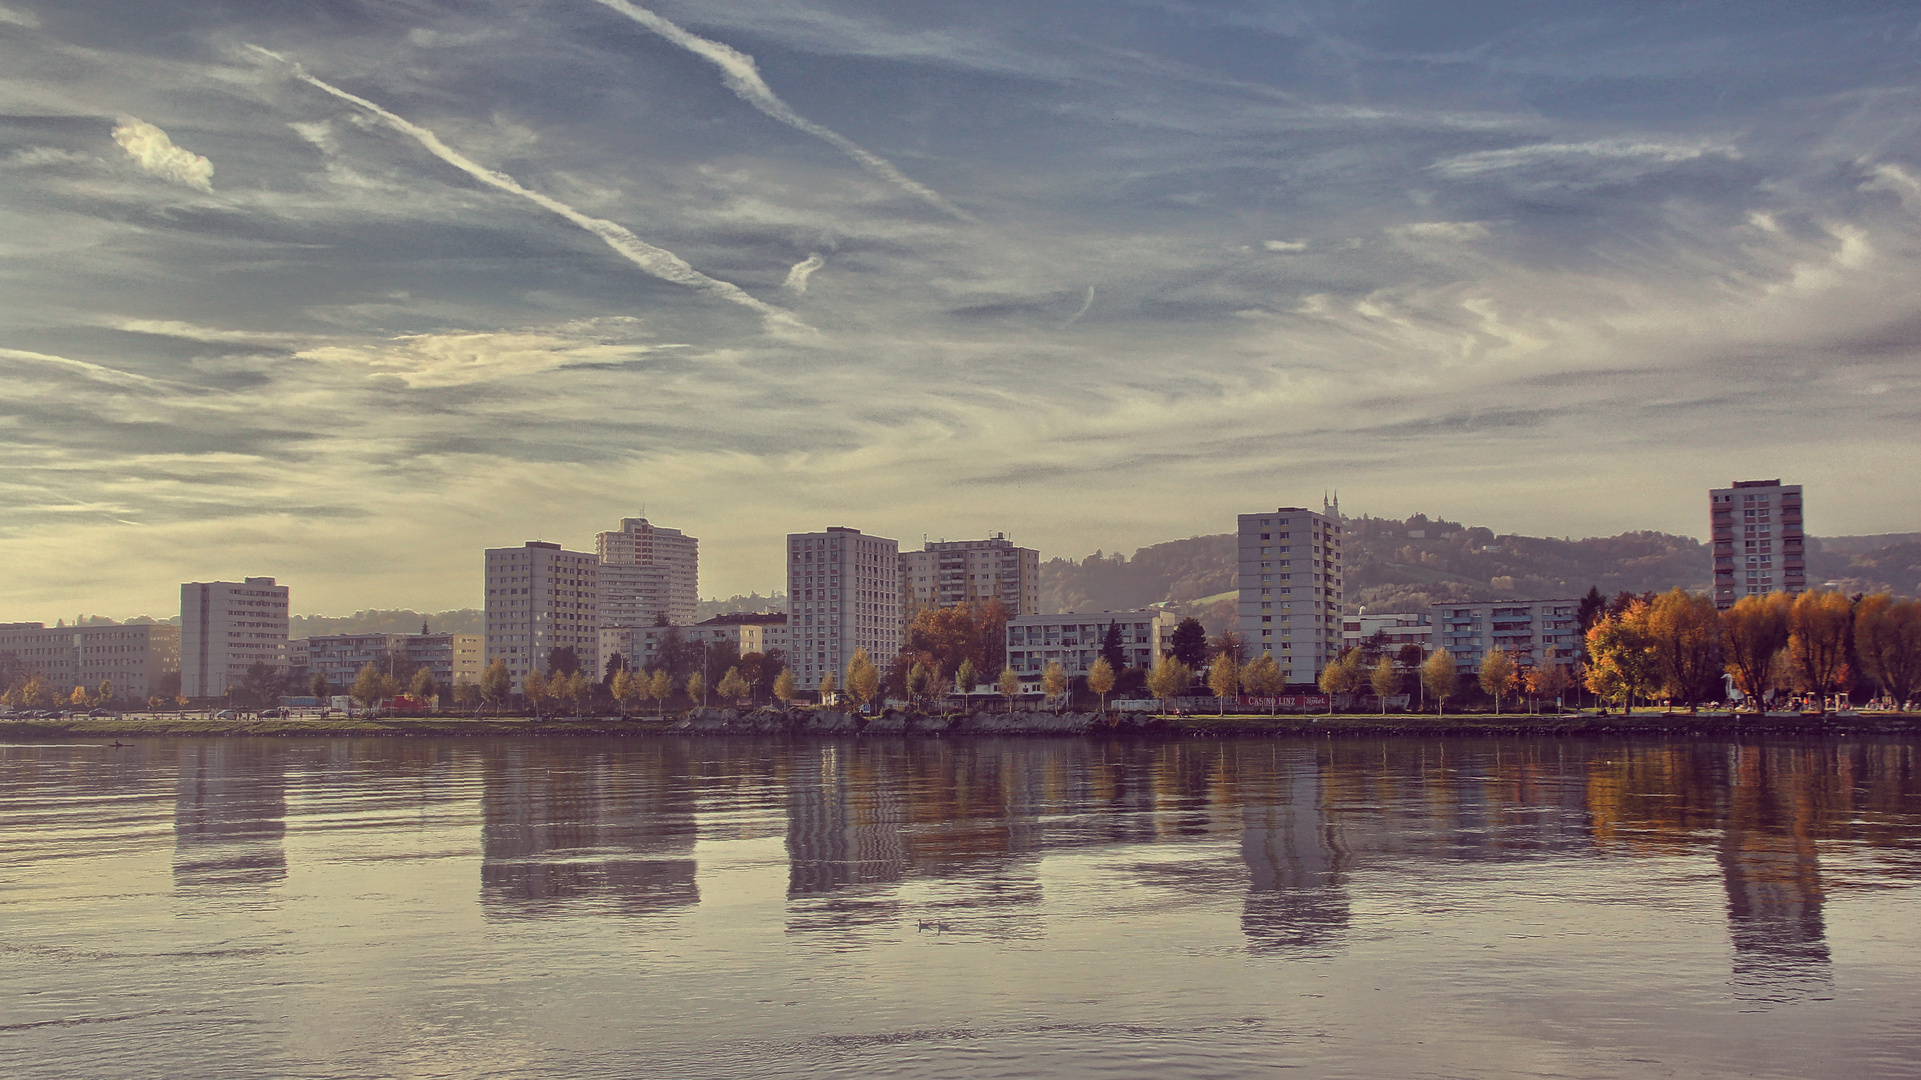 Autumn in Linz